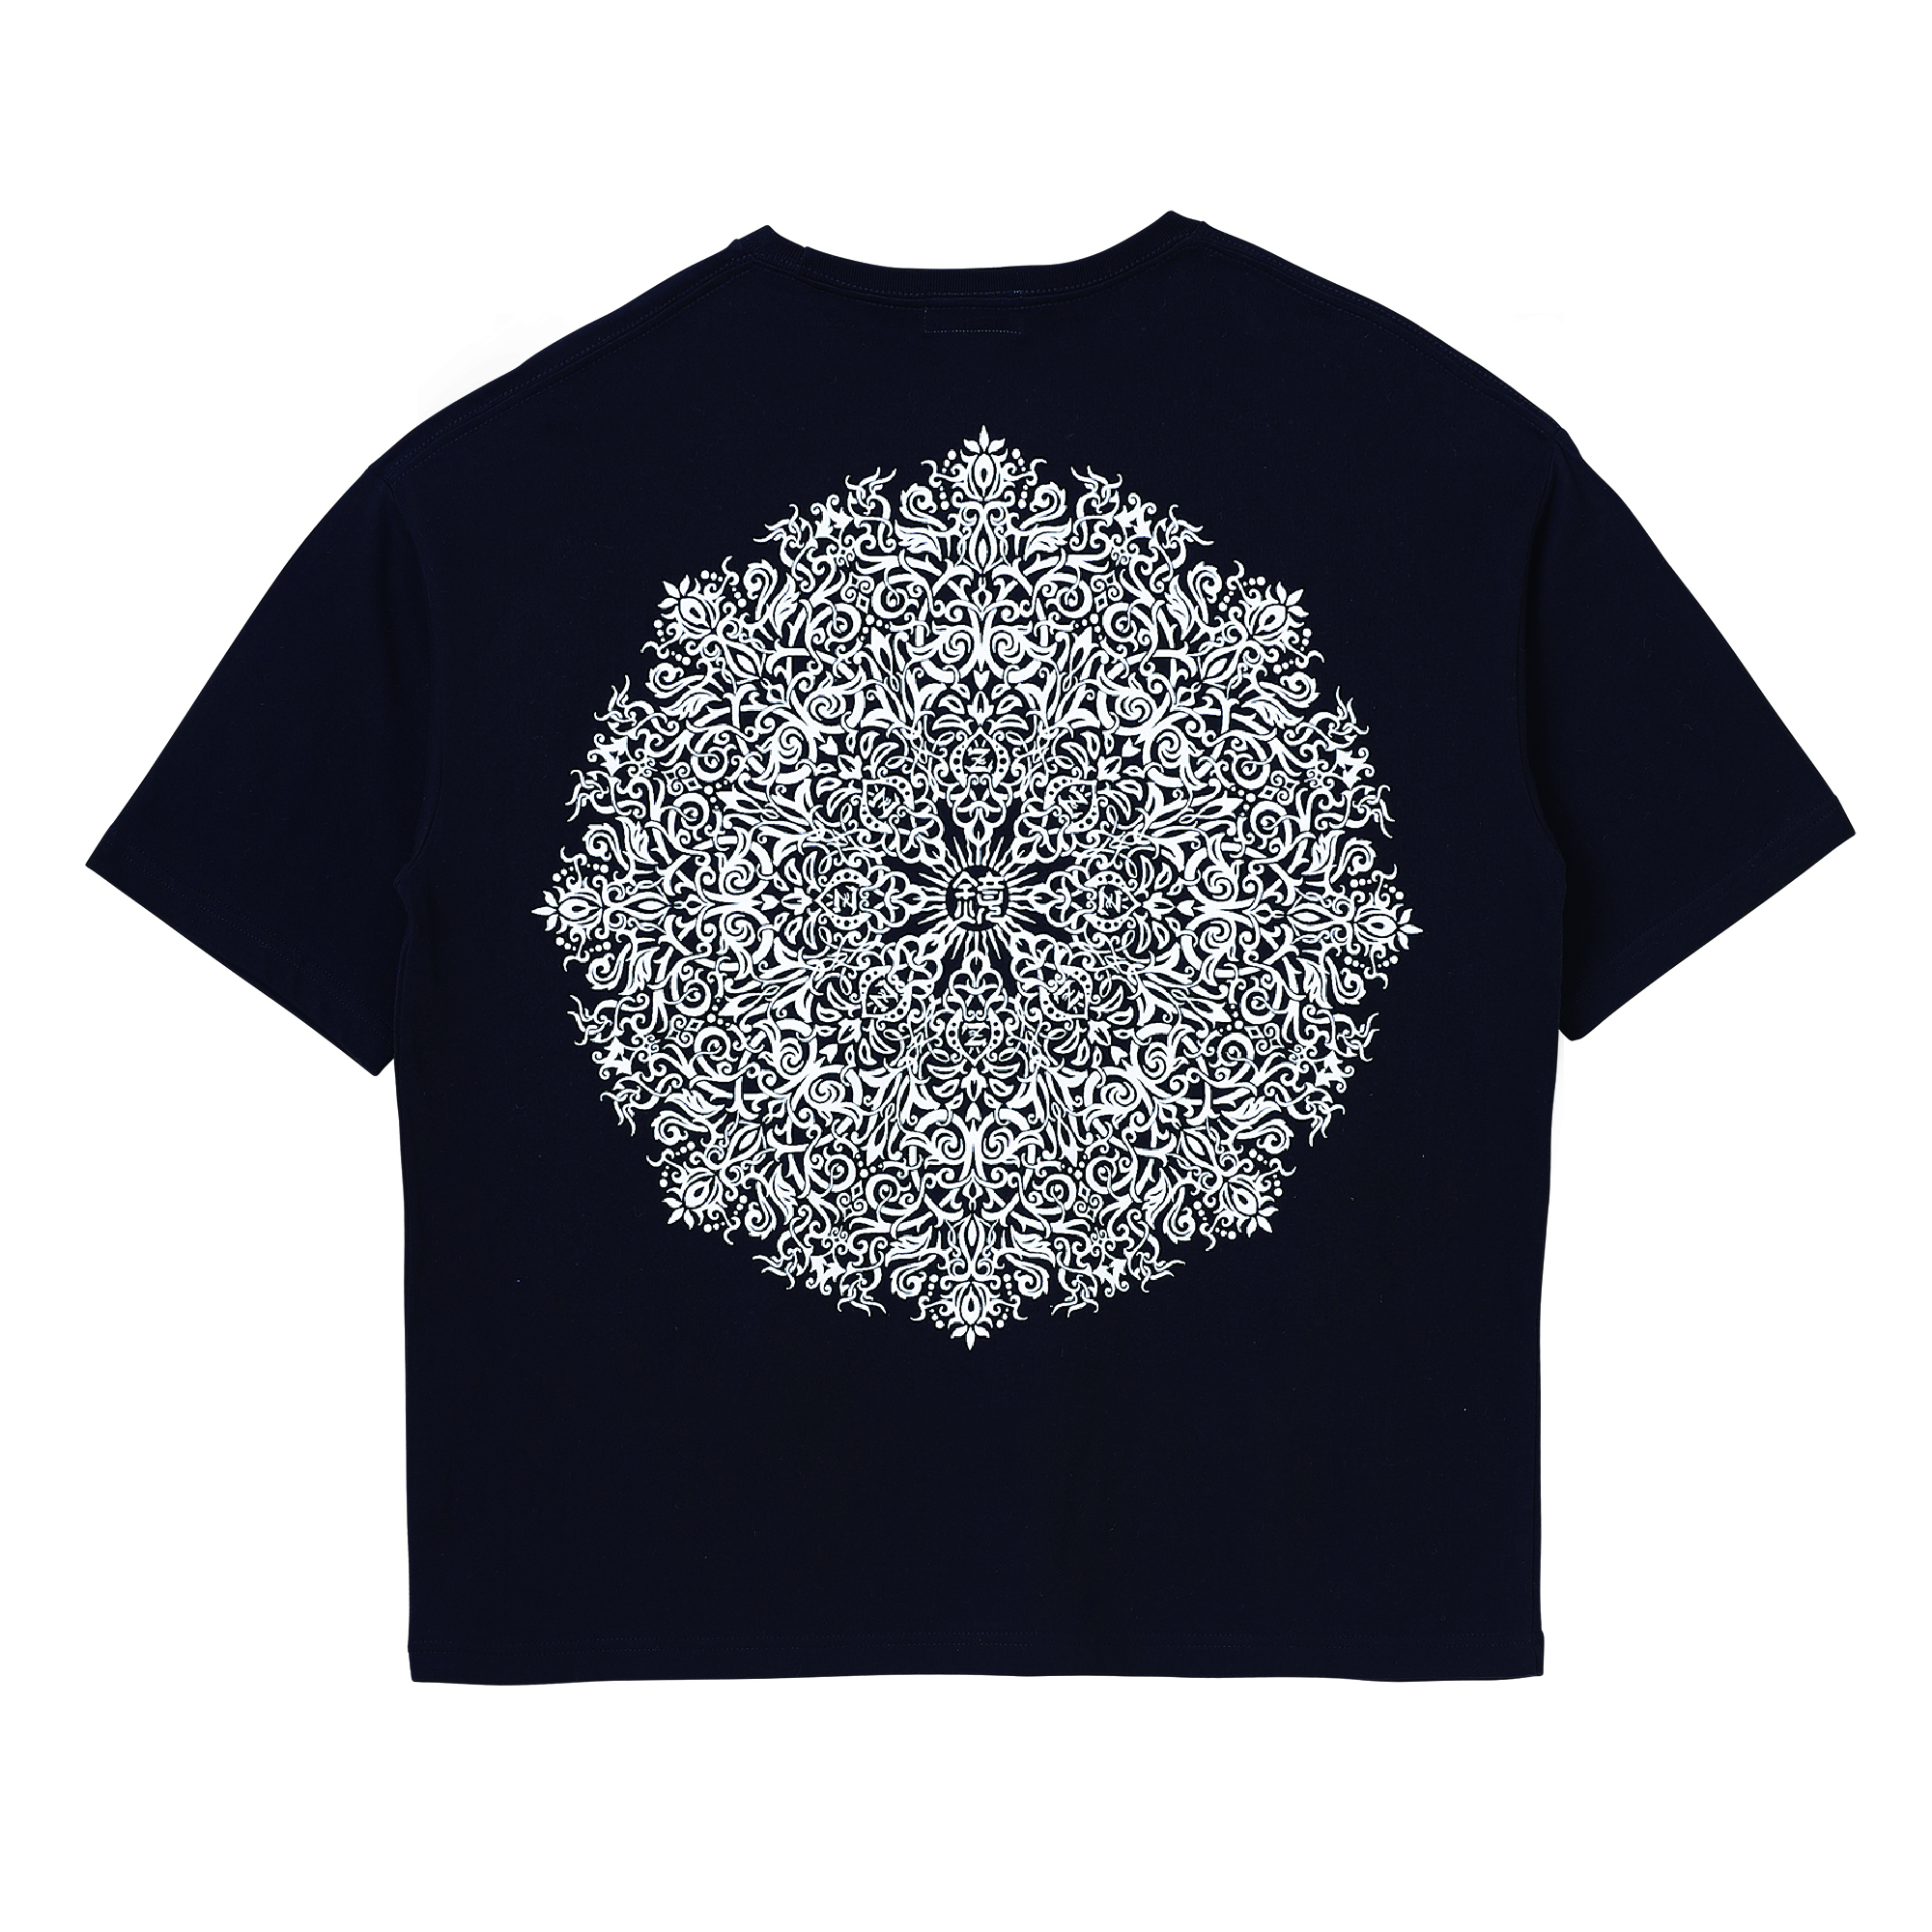 Zephyren(ゼファレン)BIG TEE - VISIONARY / Kaleidoscope - BLACK